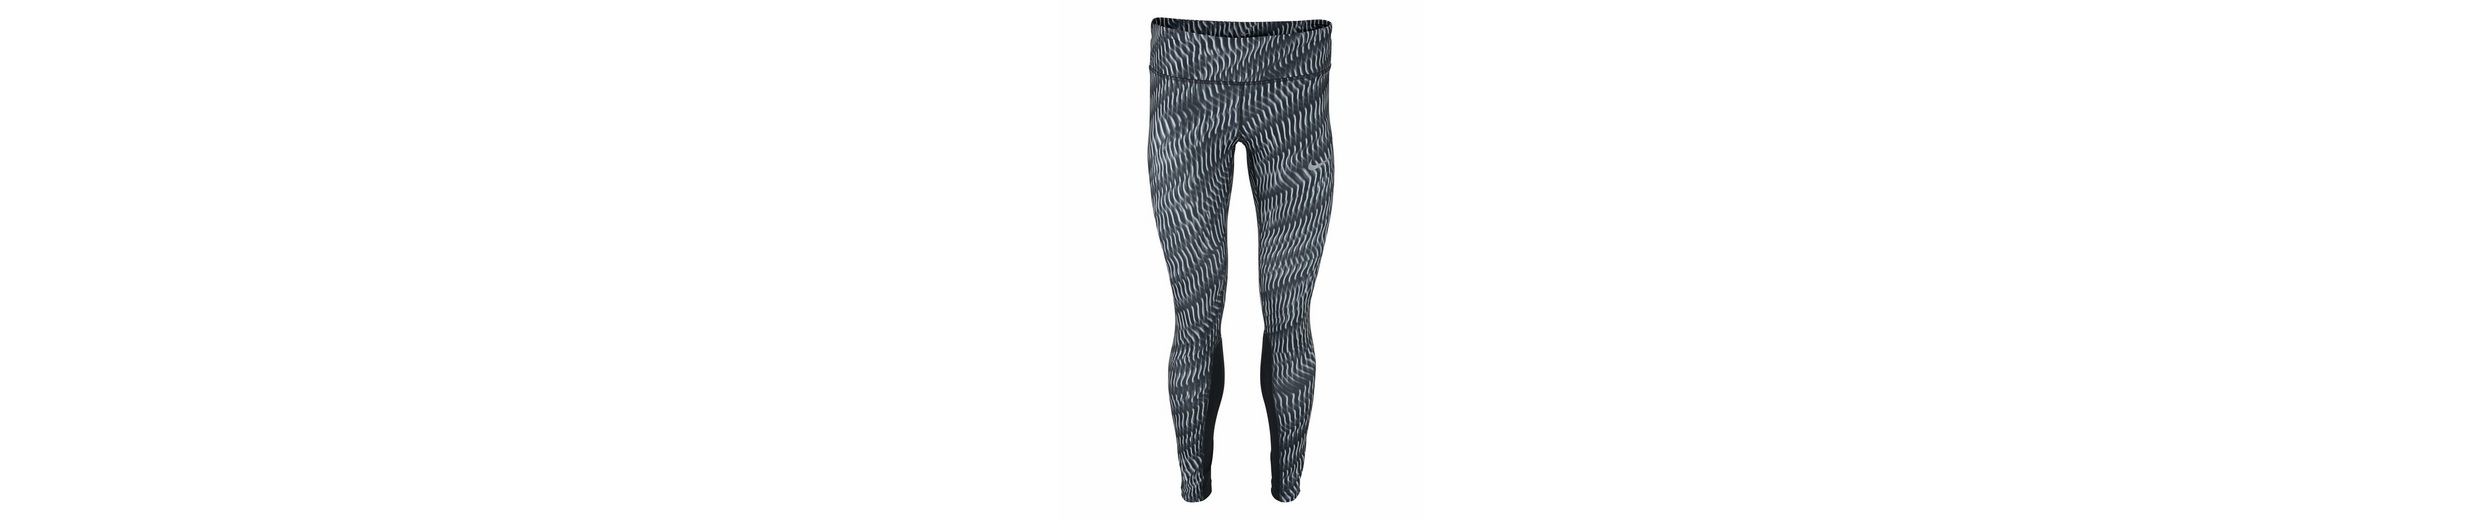 POWER W TIGHT Nike Lauftights EPIC Lauftights PR W RUN Nike Iwq4pBX